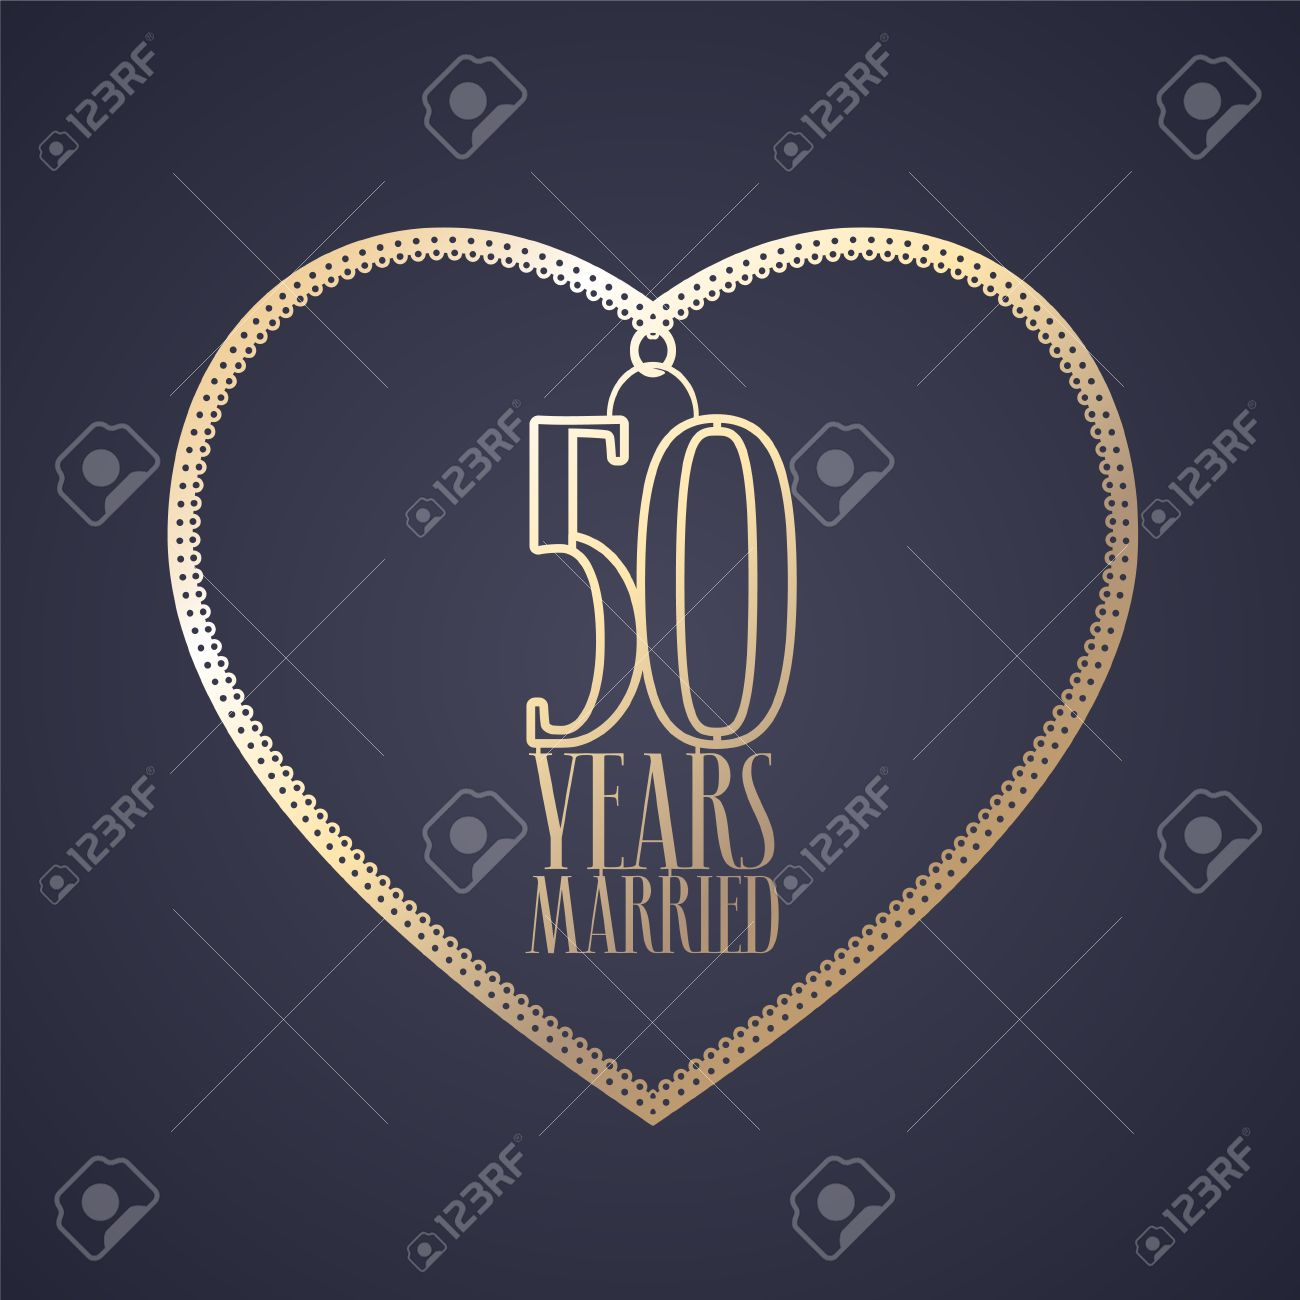 50 years anniversary of being married vector icon logo graphic 50 years anniversary of being married vector icon logo graphic design element with golden buycottarizona Choice Image